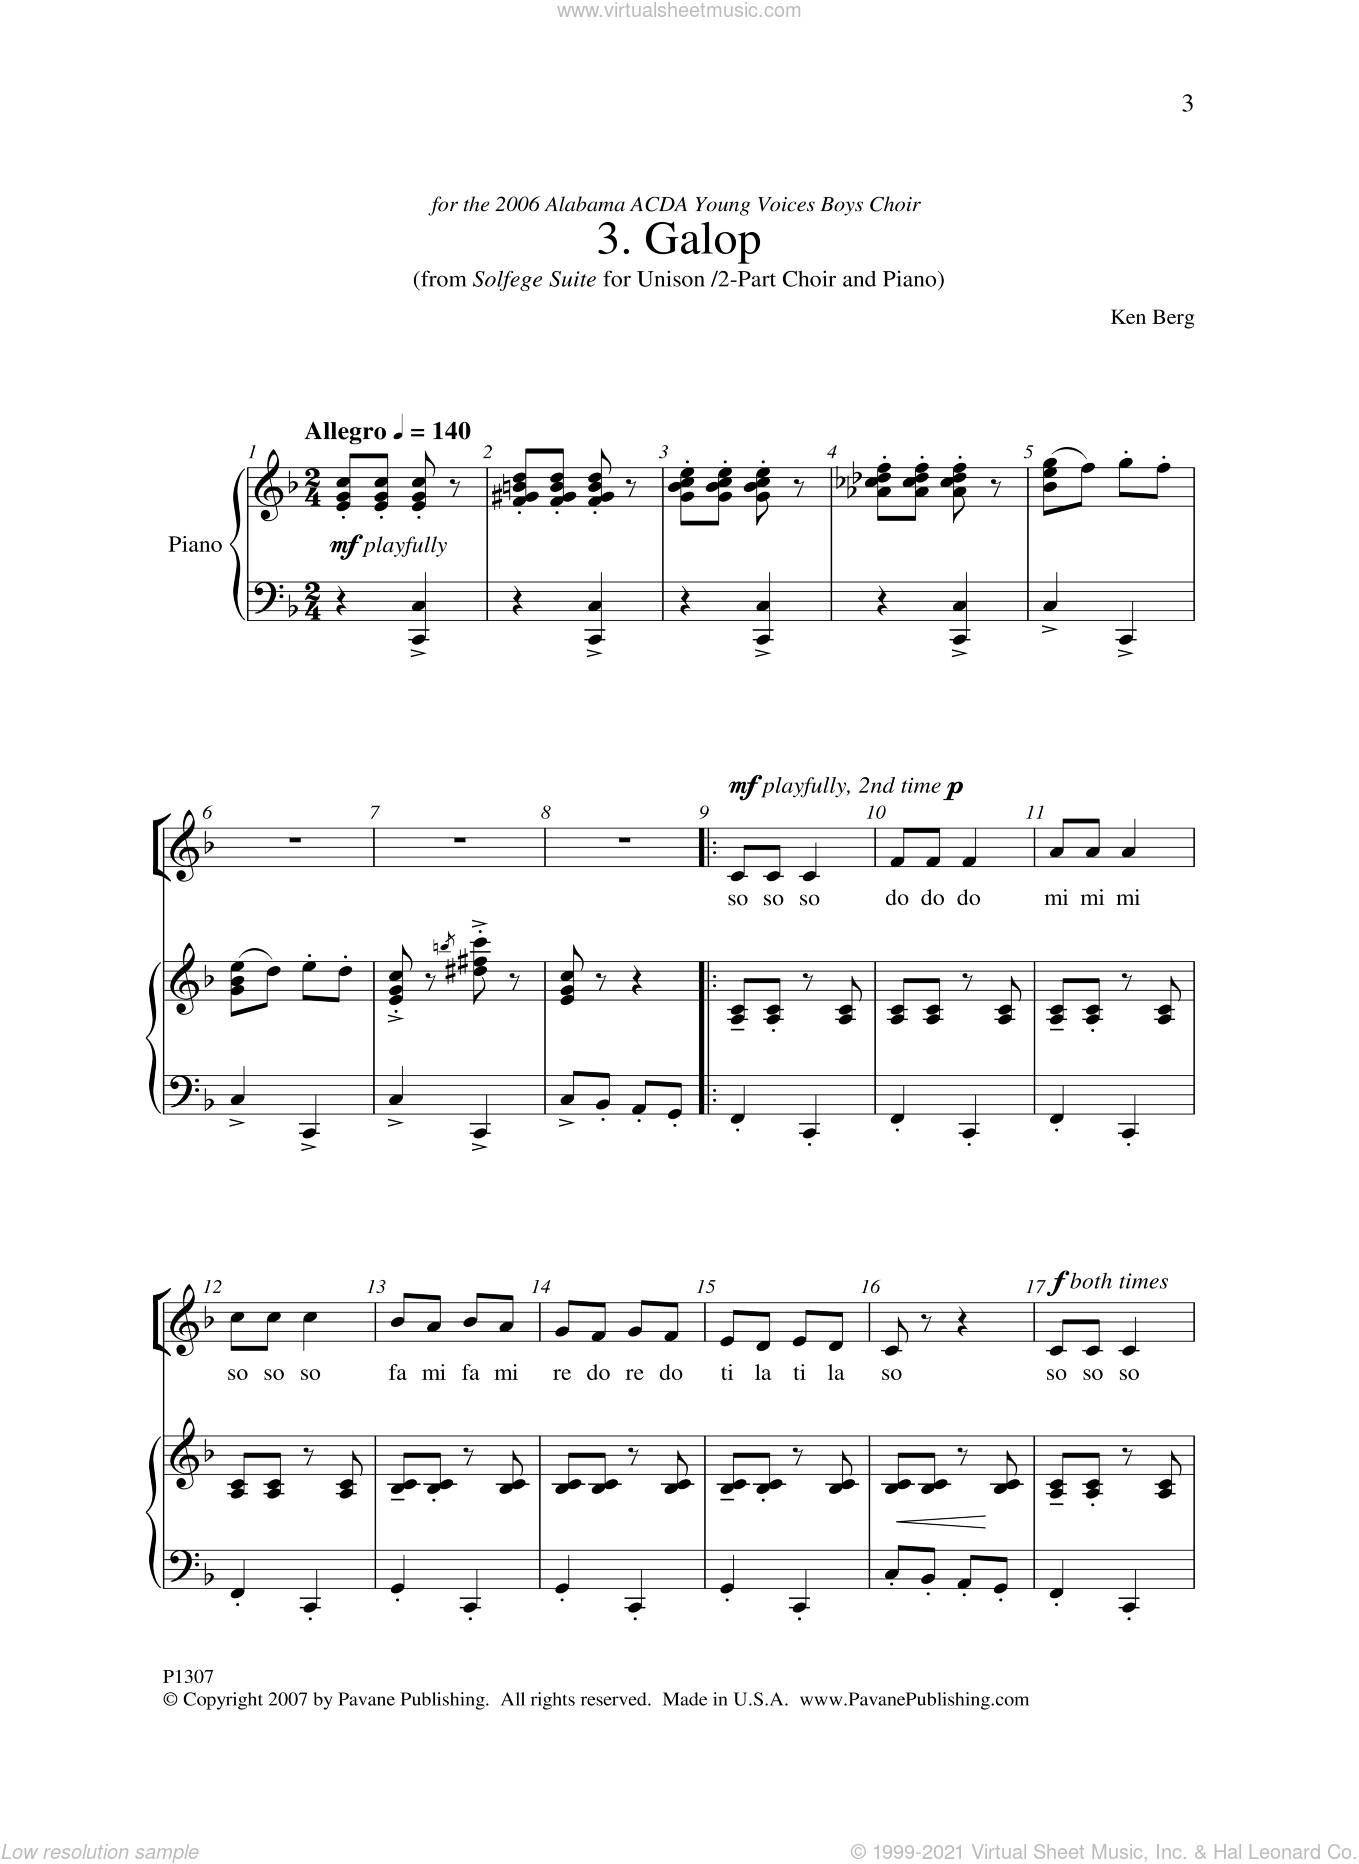 Galop sheet music for choir and piano by Ken Berg